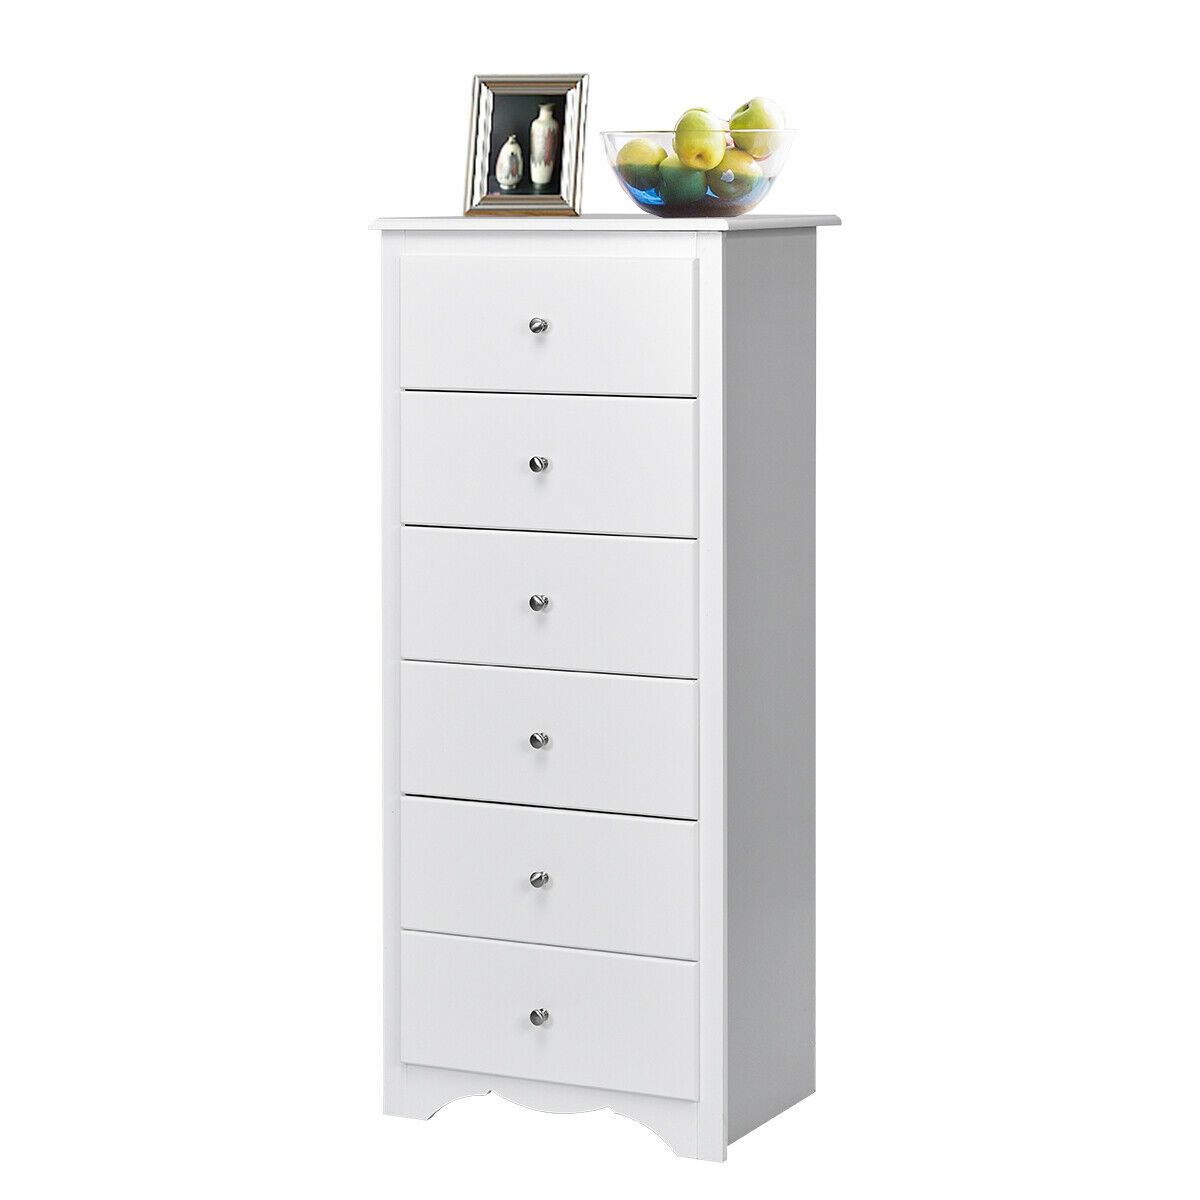 Gymax 6 Drawer Chest Dresser Clothes Storage Bedroom Tall Furniture Cabinet White Walmart Com In 2020 Chest Dresser Tall Furniture 6 Drawer Chest